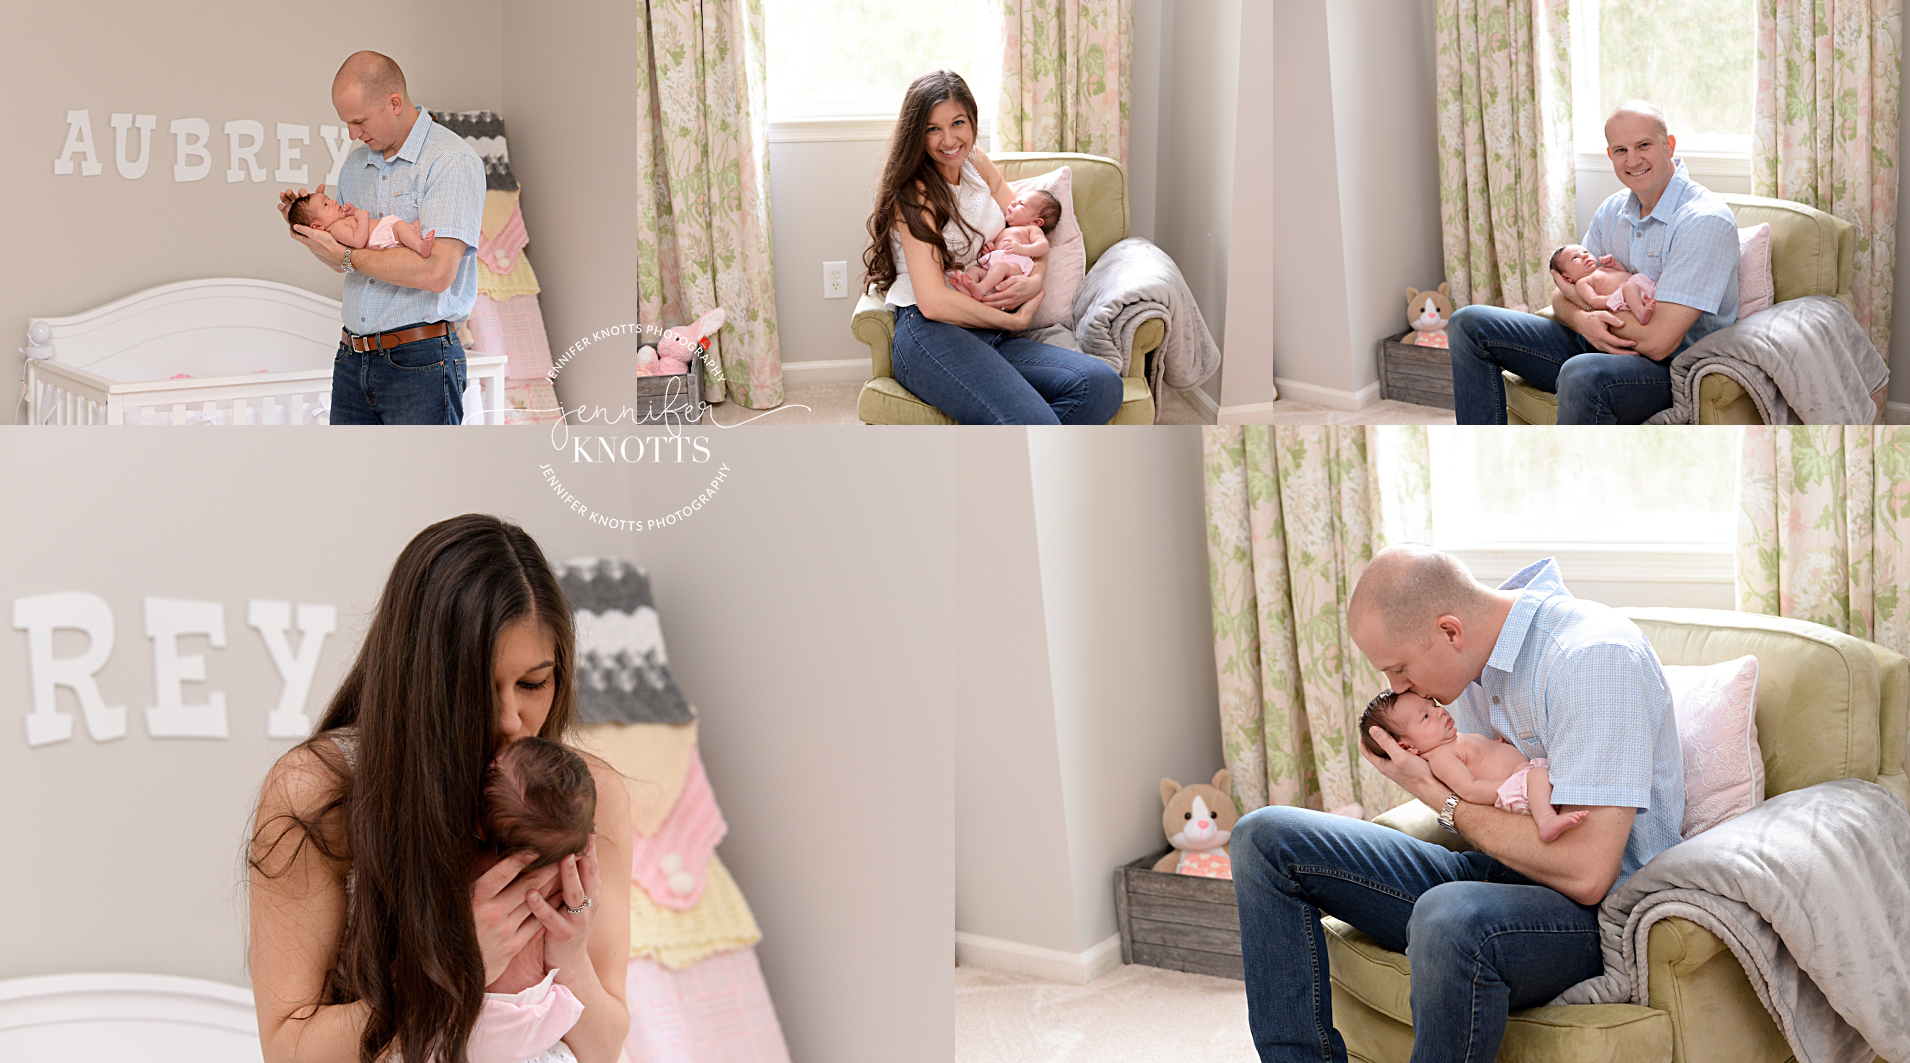 Mom and dad cuddle newborn daughter in beautiful nursery